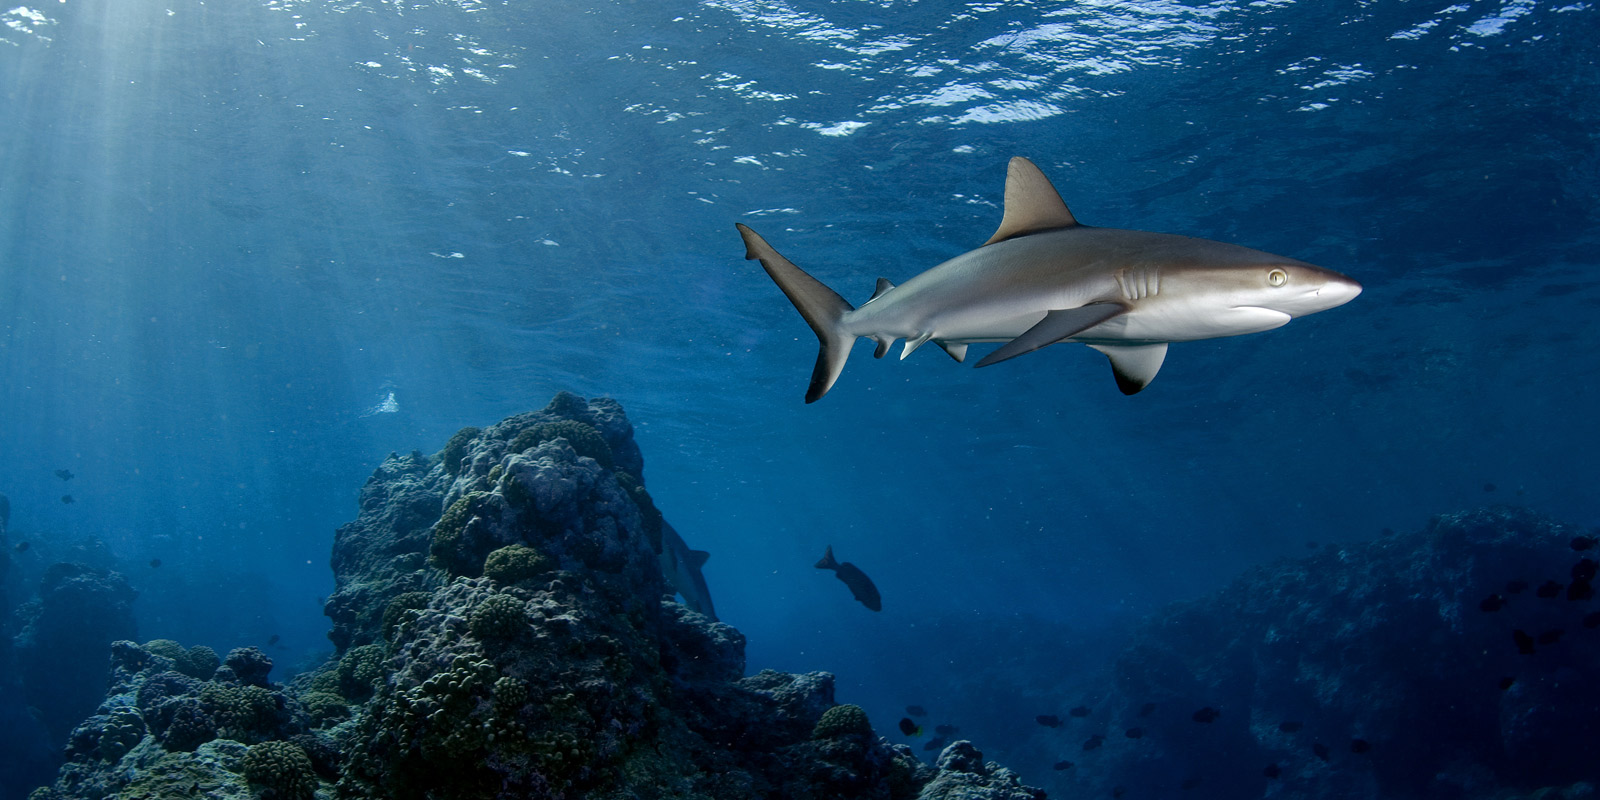 Shark over Reef - Image by National Geographic